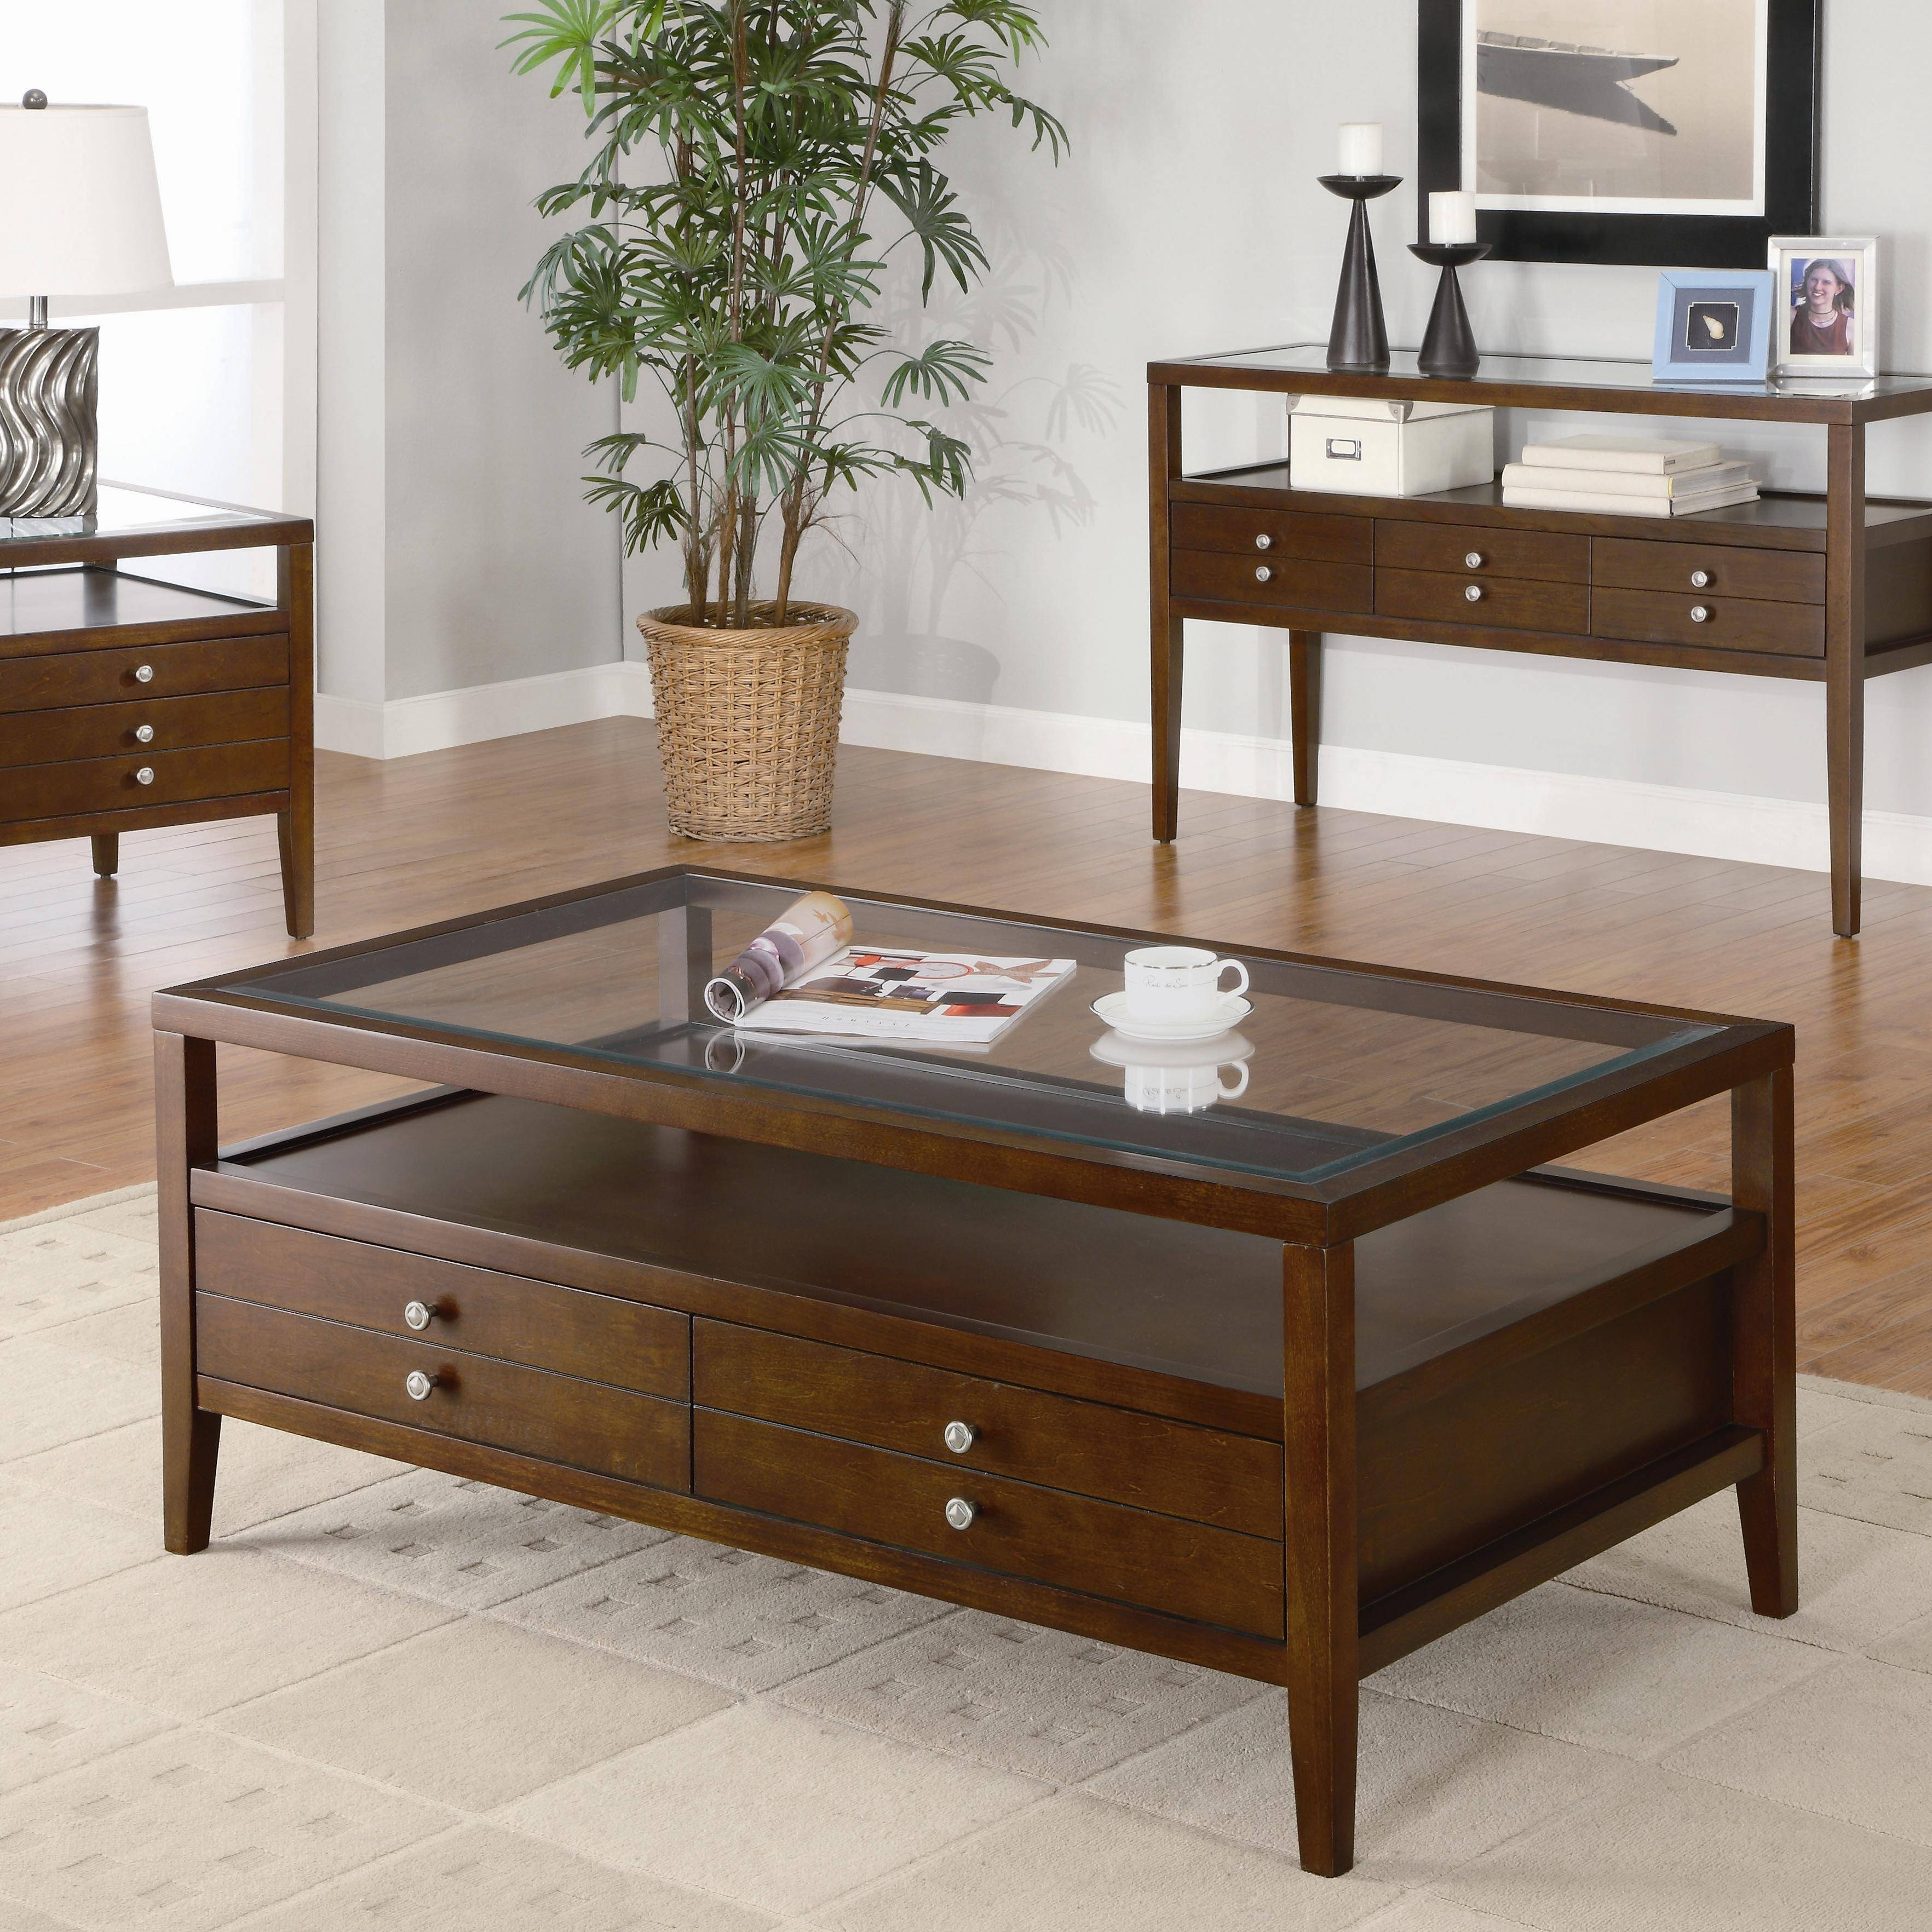 Glass Top Display Coffee Table Canada: 30 Best Collection Of Glass Top Display Coffee Tables With